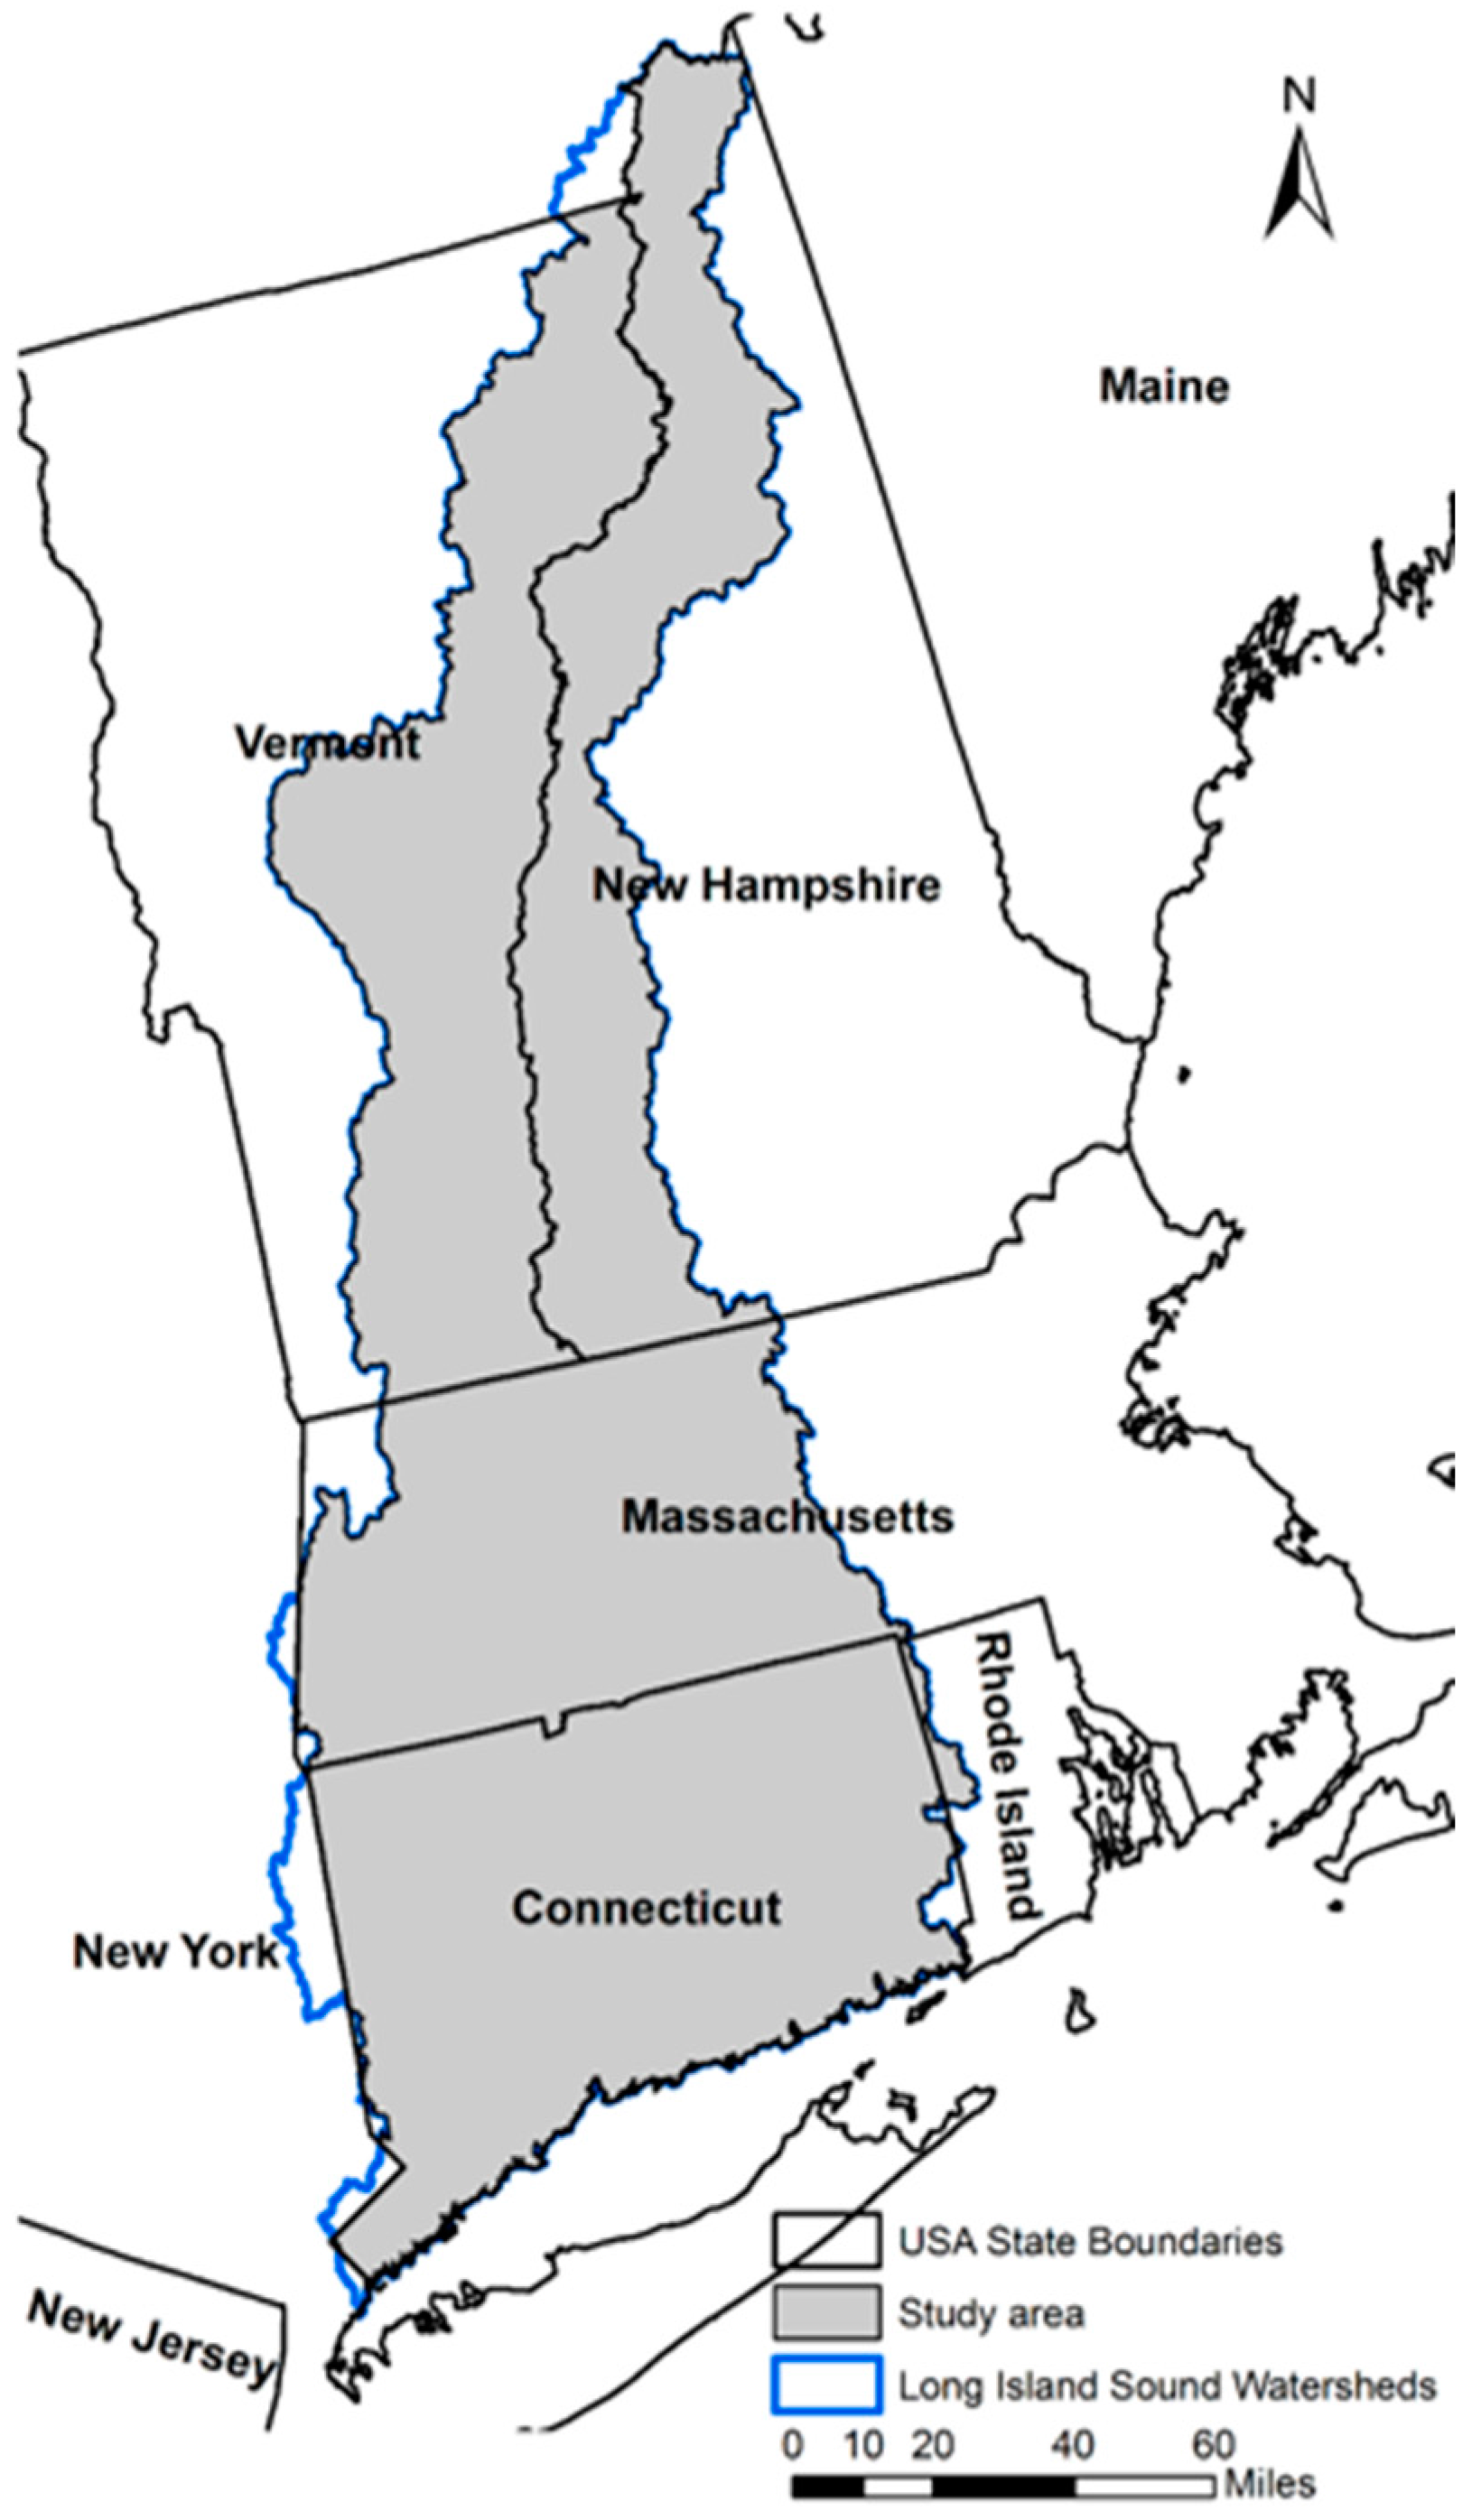 Land Free FullText Prediction of Land Use Change in Long Island